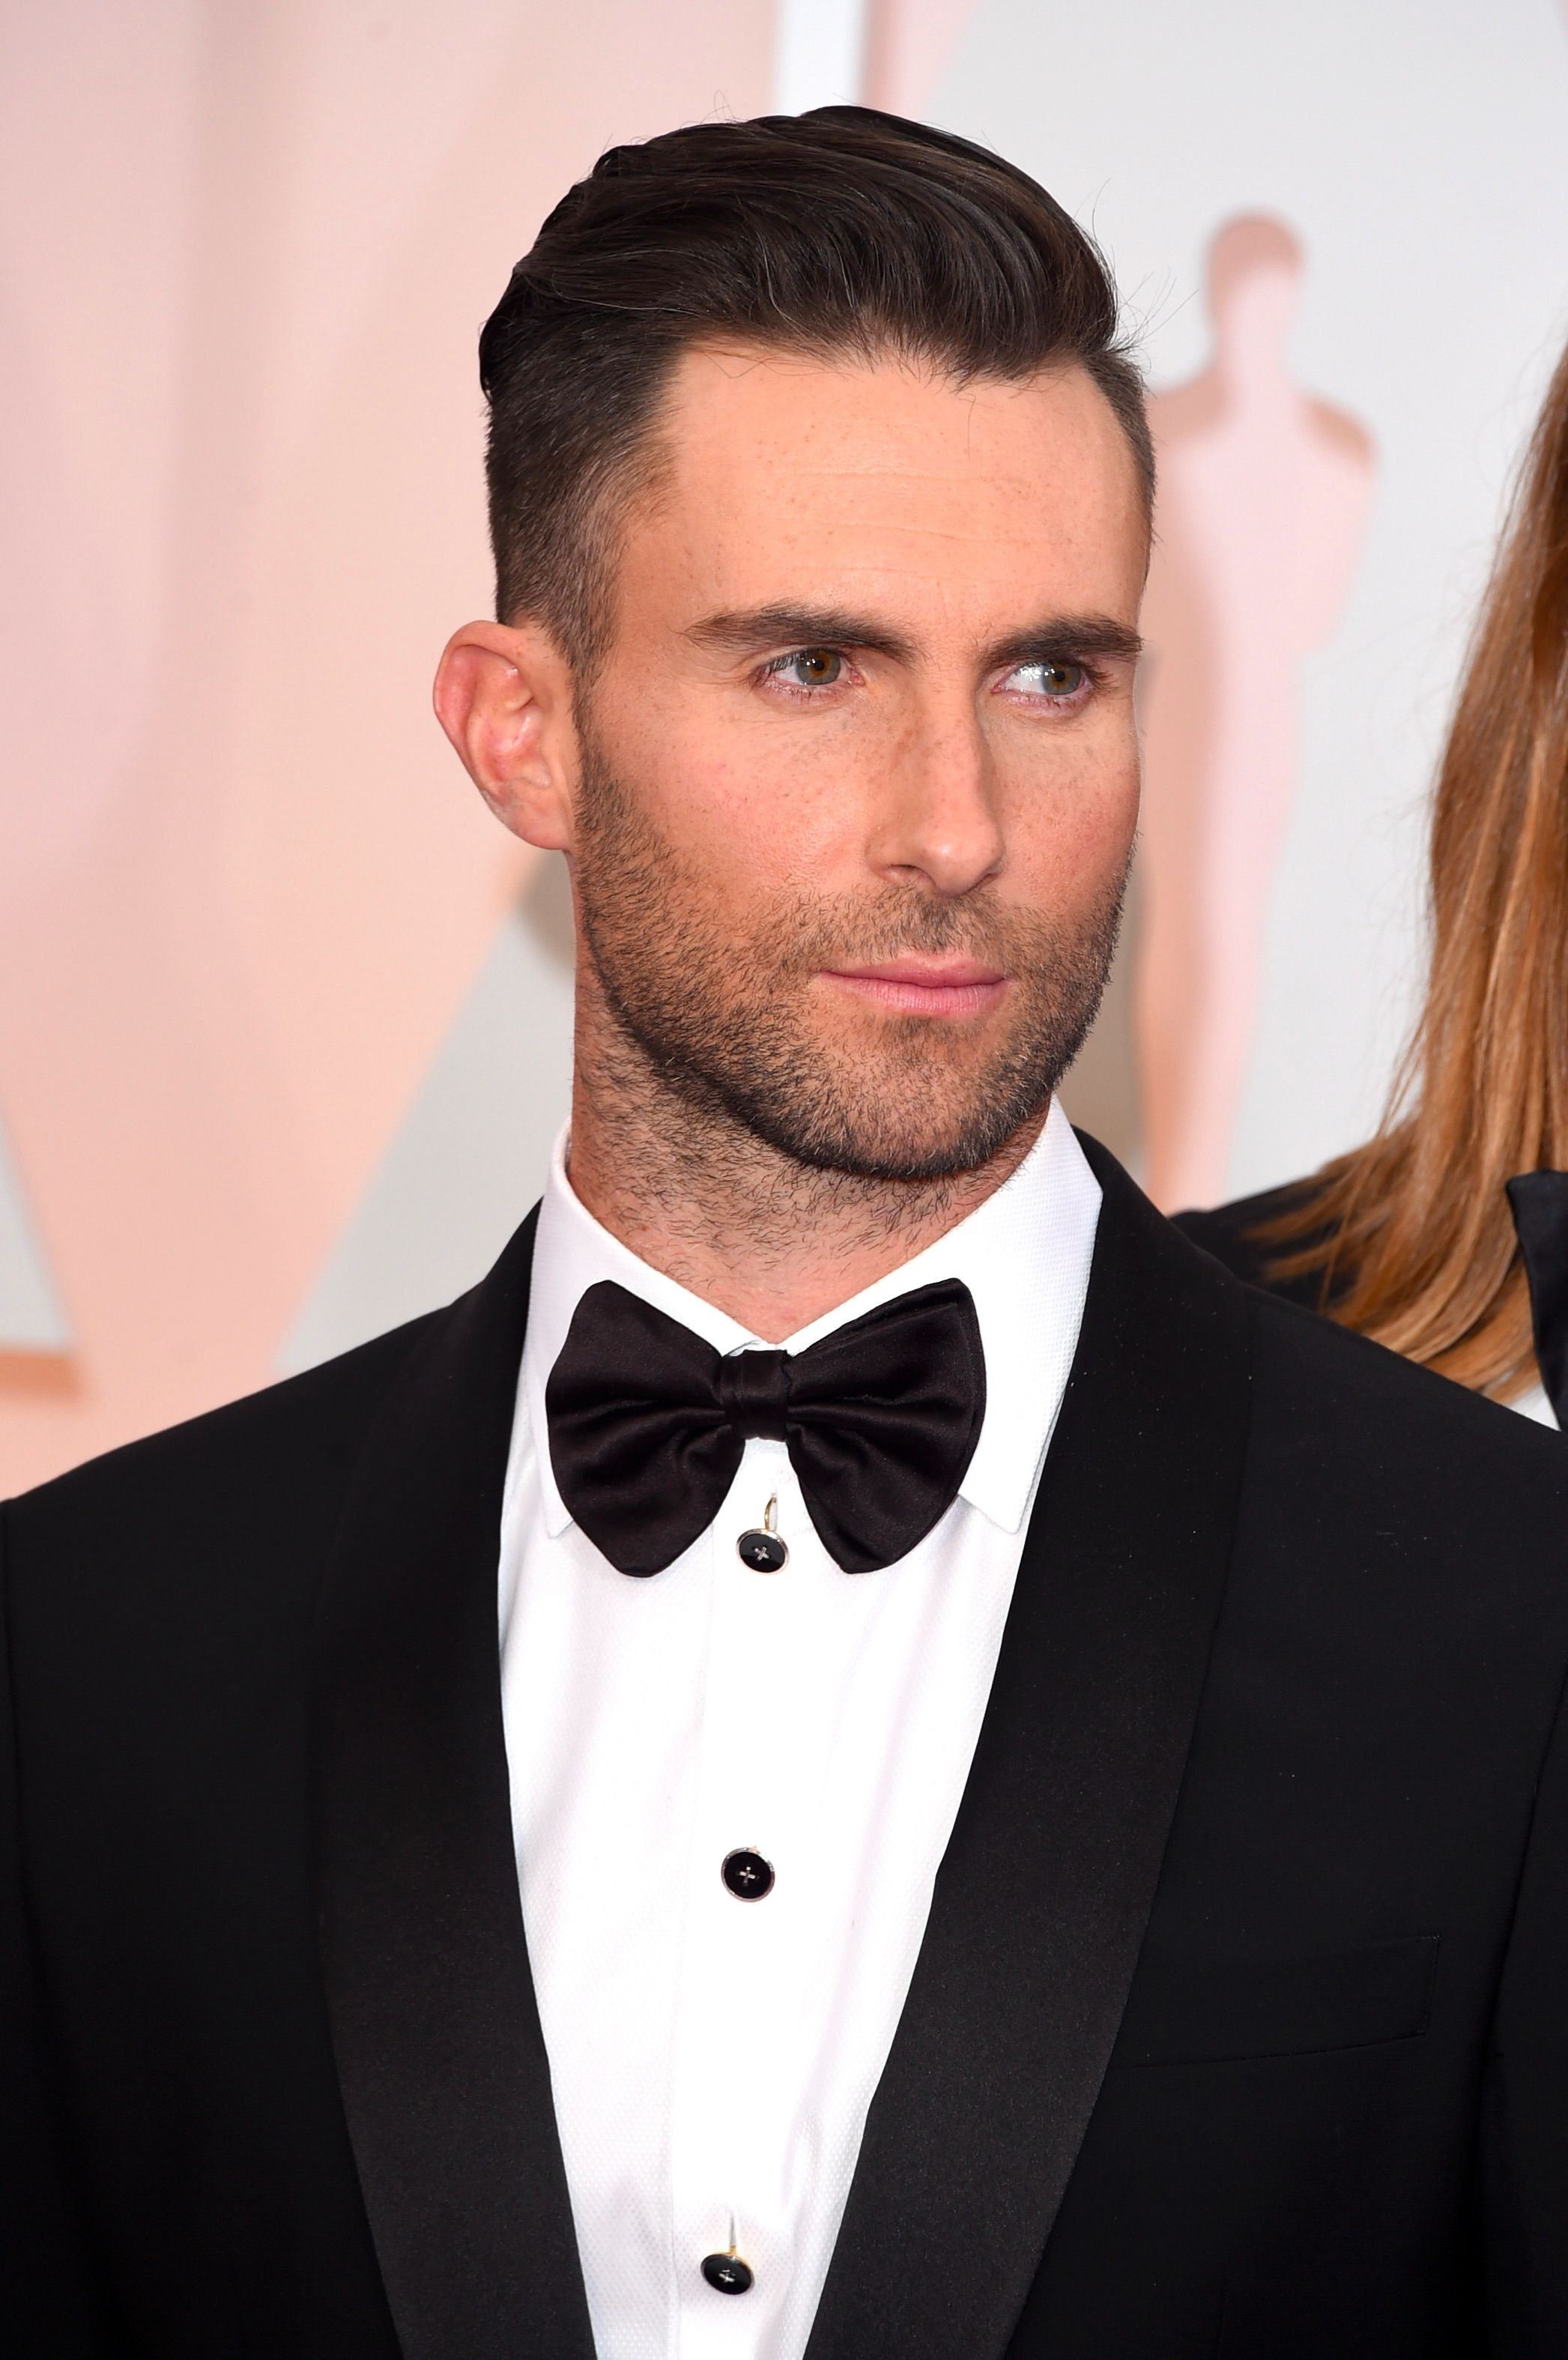 Adam Levine on February 22, 2015 in Hollywood, California